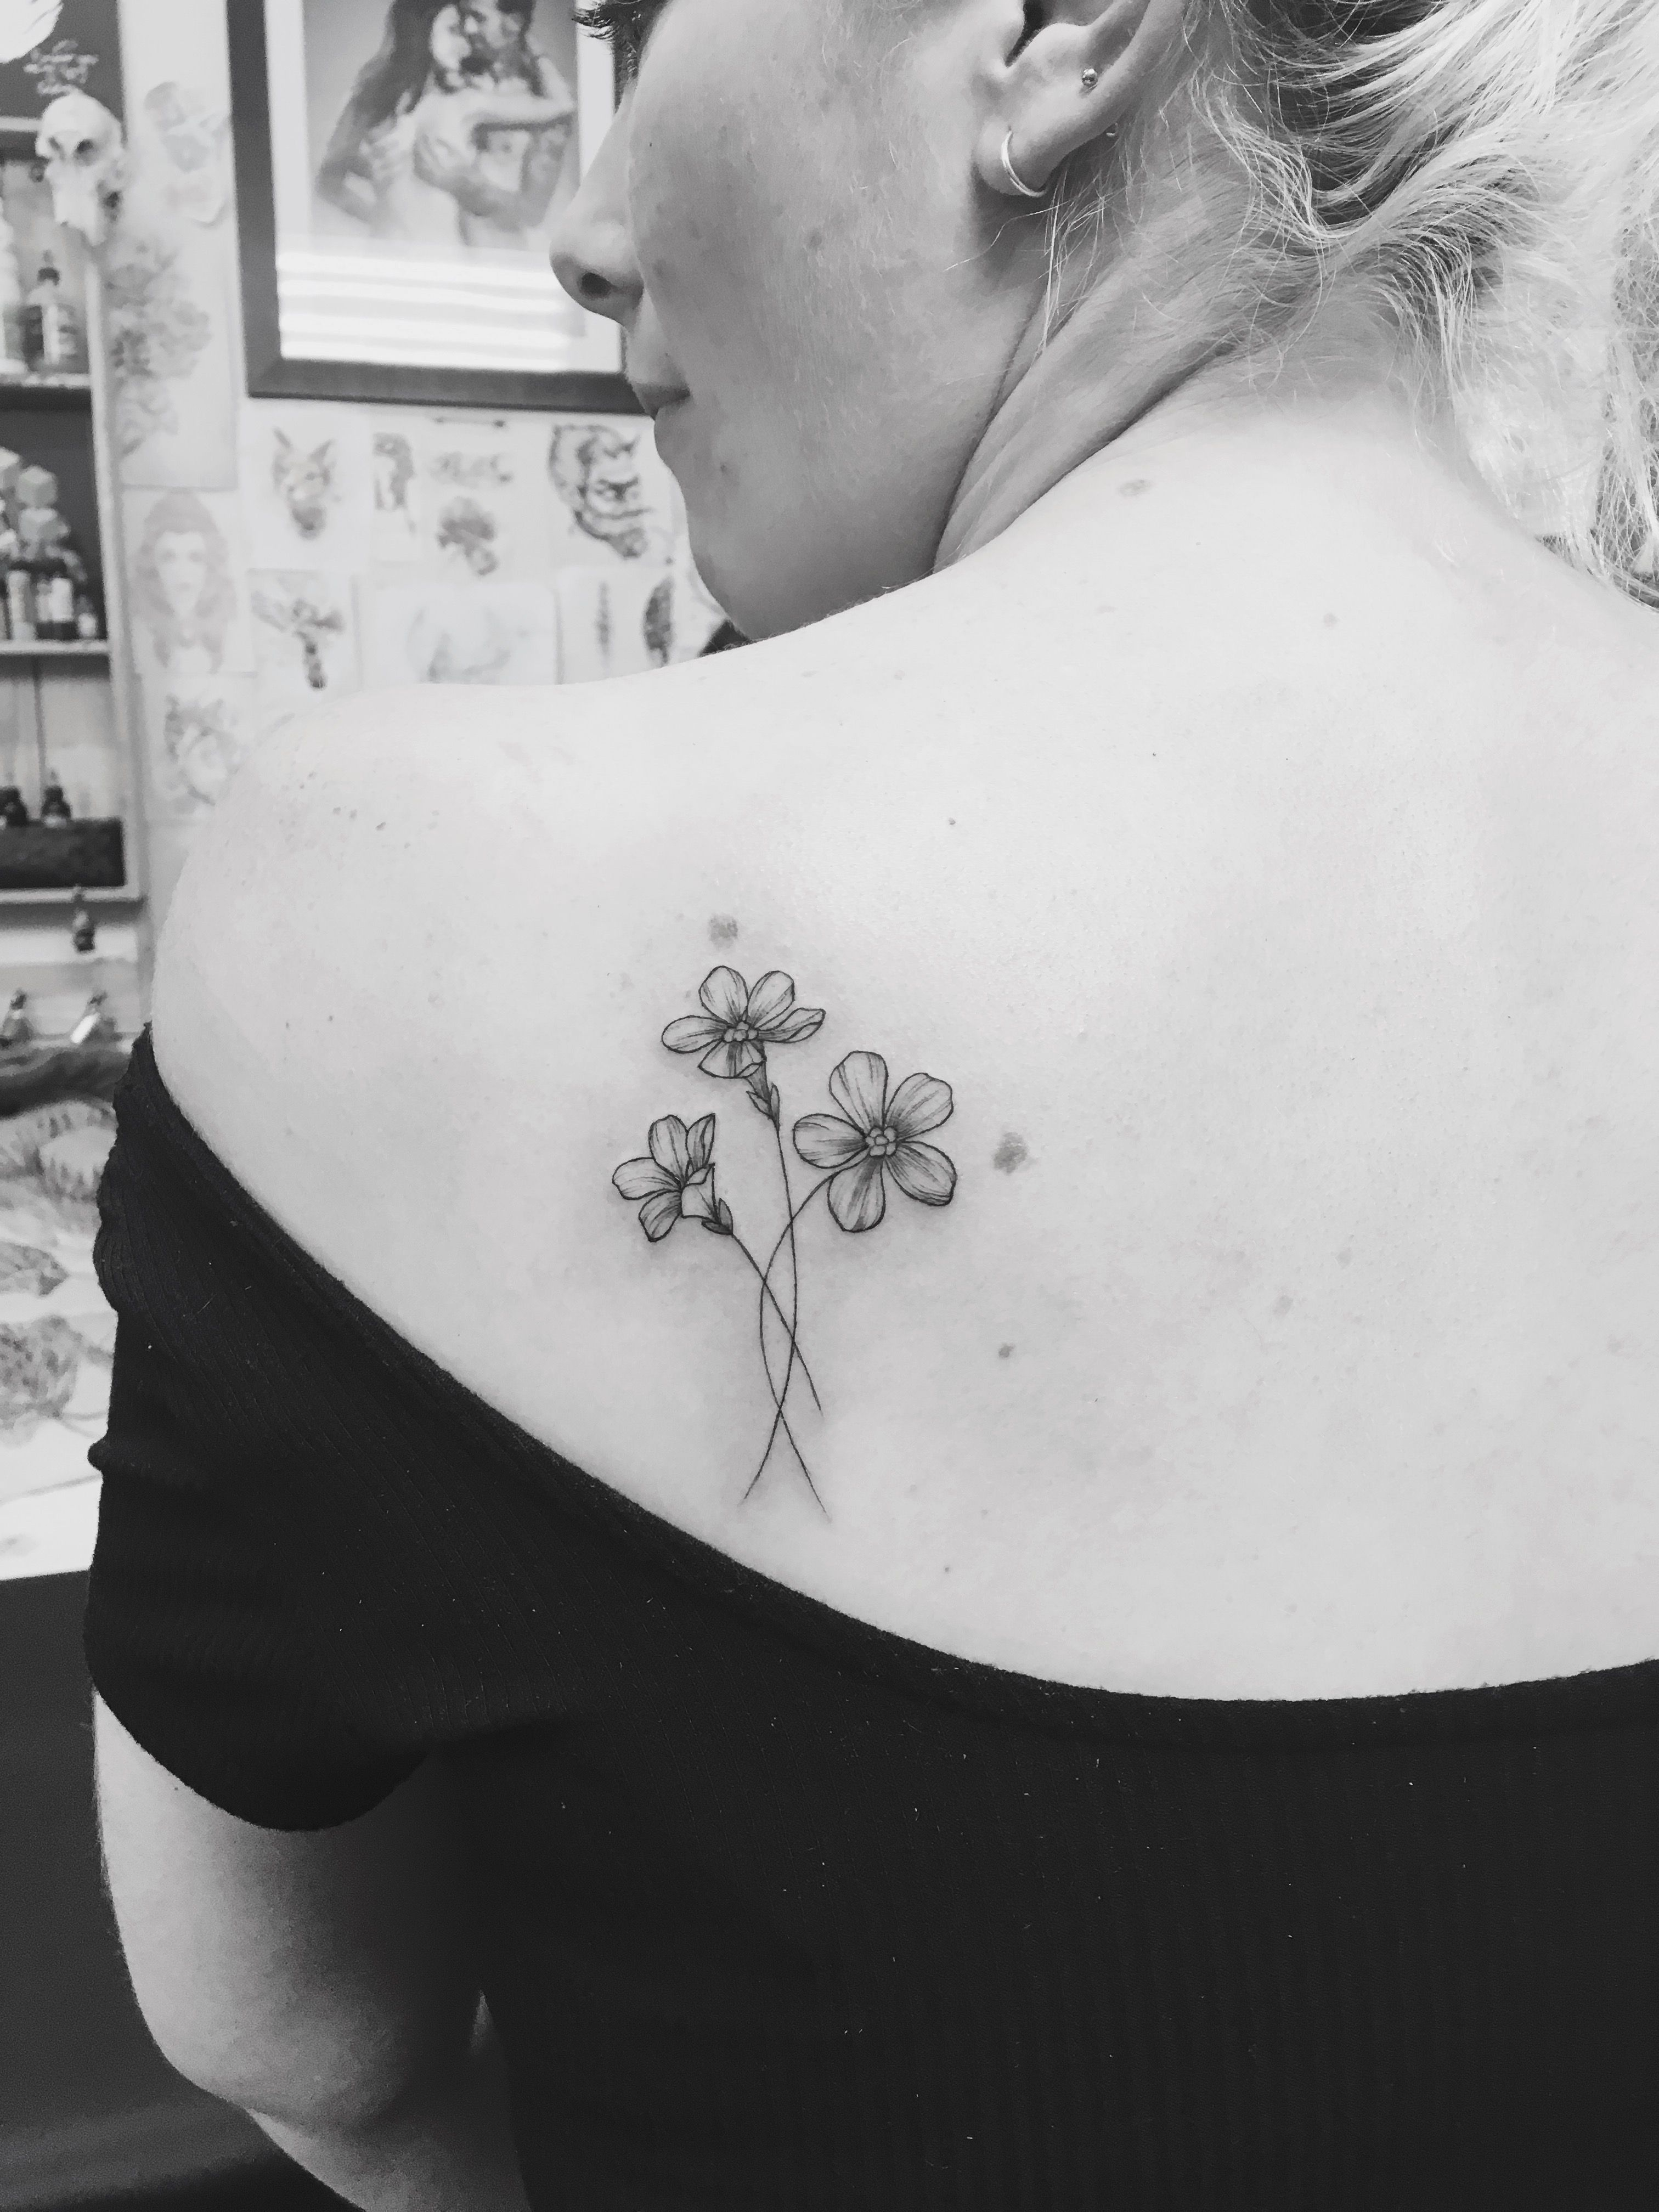 Oleander Tattoo W H I T E O N B L O N D E Tattoos Arm Ideas And Designs